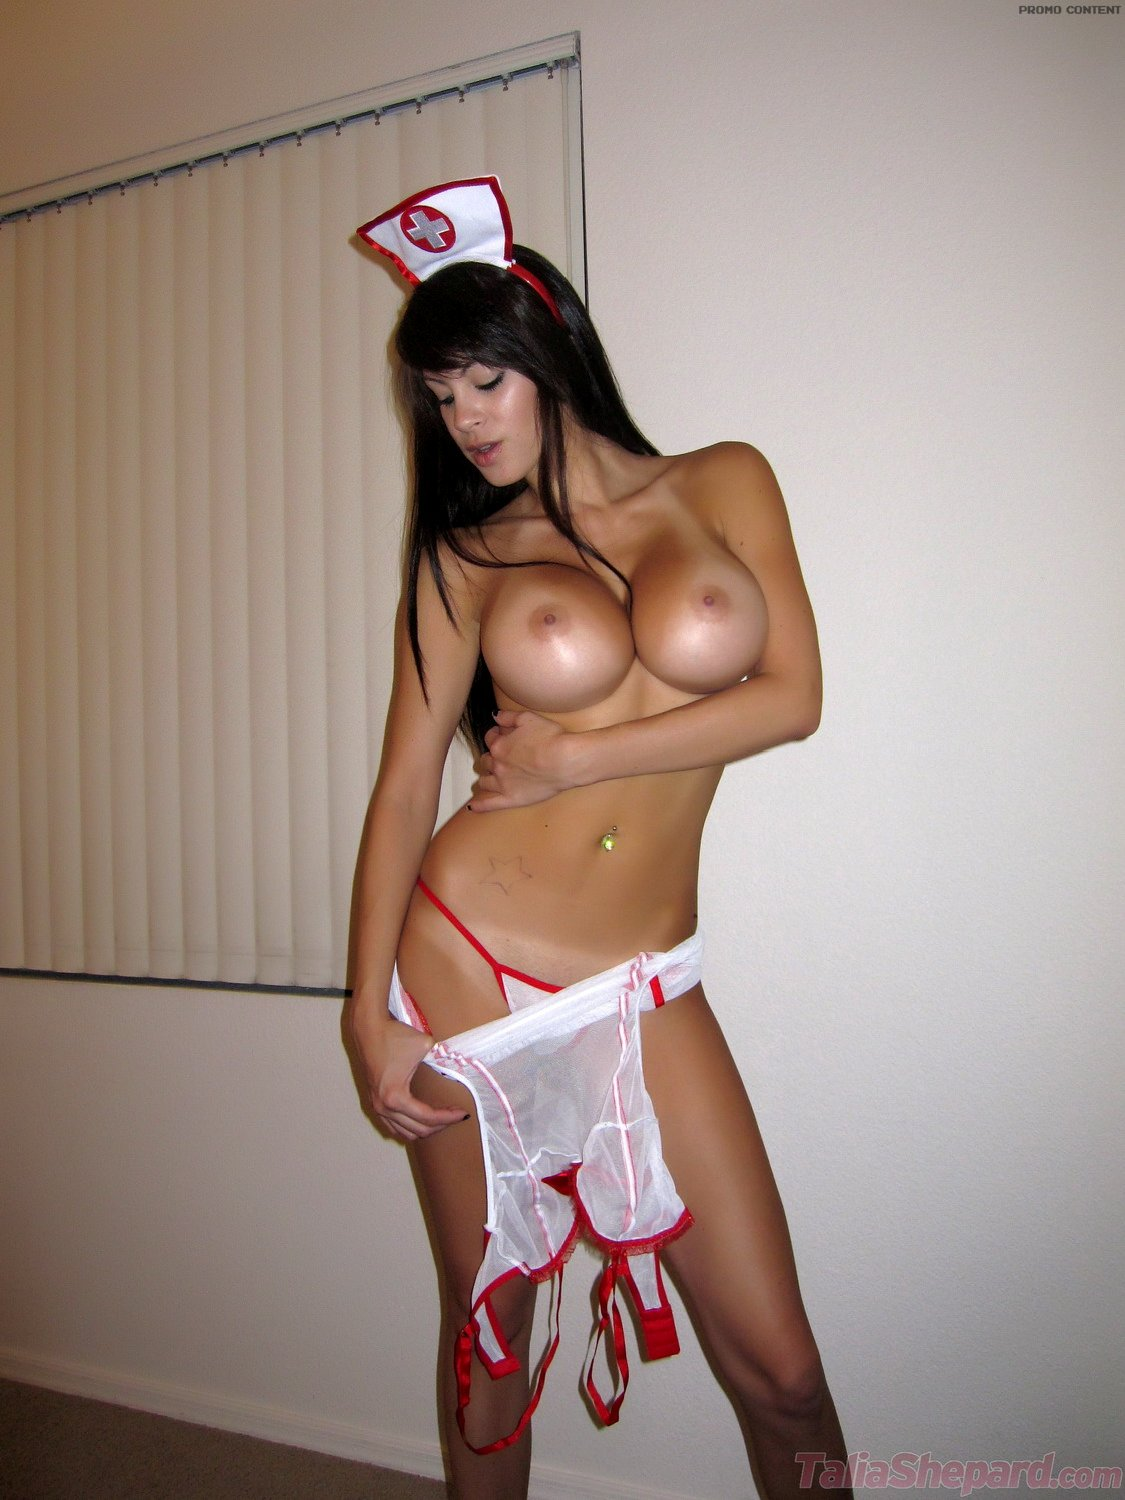 Nude nurse hentai photos